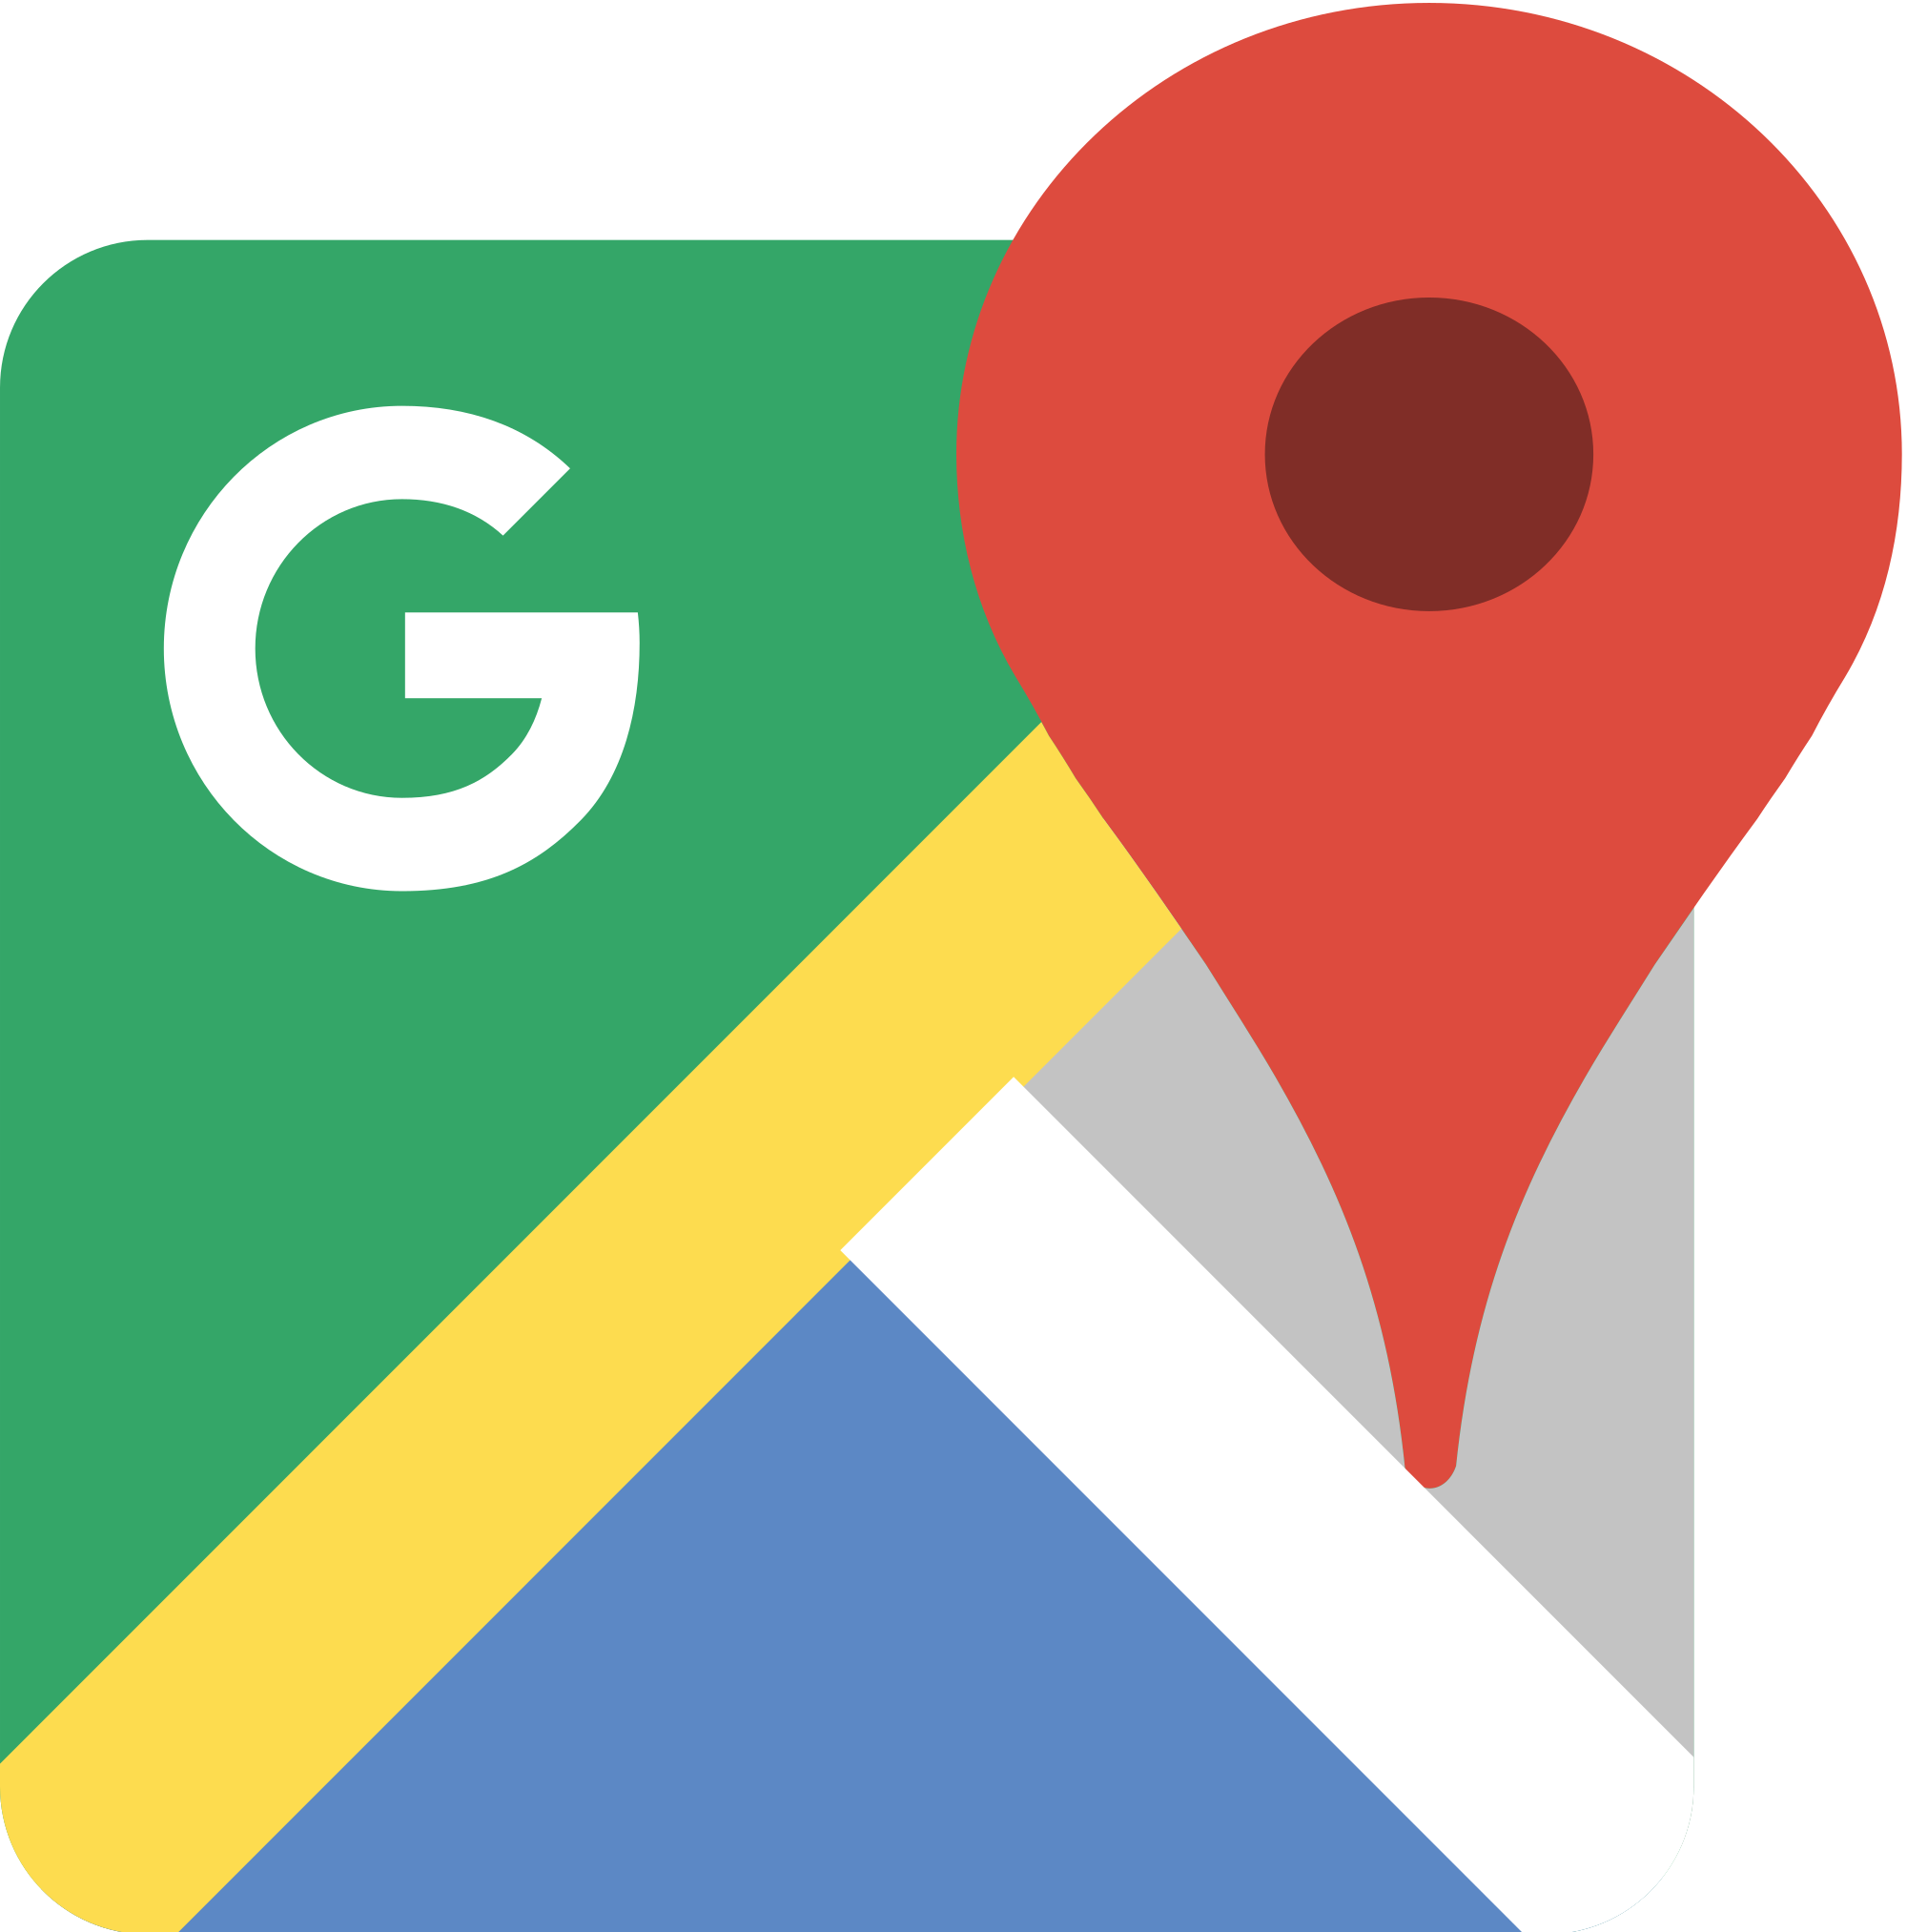 Navigate to Balcatta - Google Maps